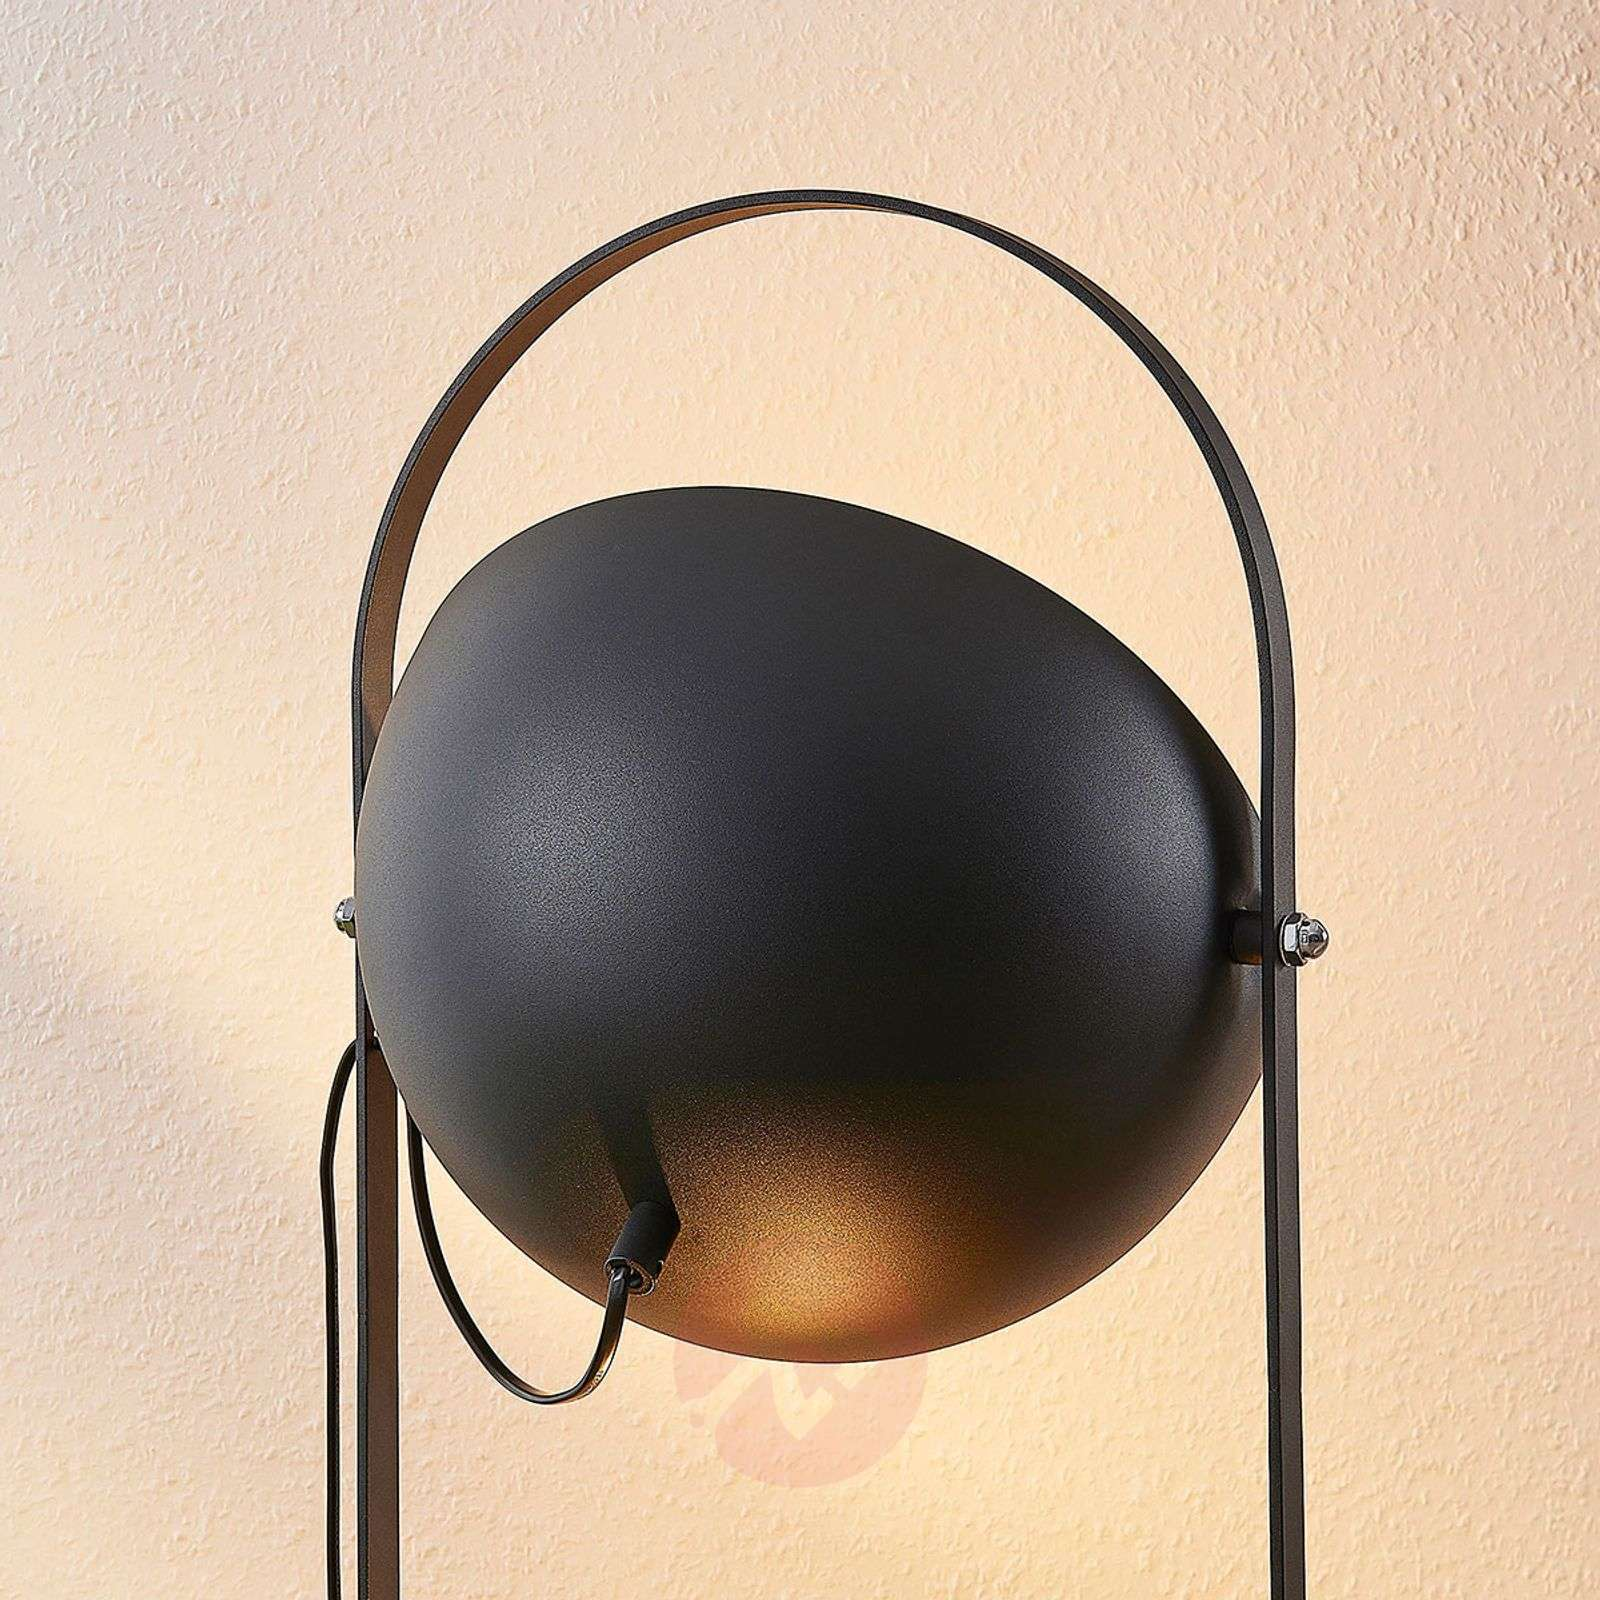 Floor lamp Muriel, 3-bulb, black/gold-9624226-02